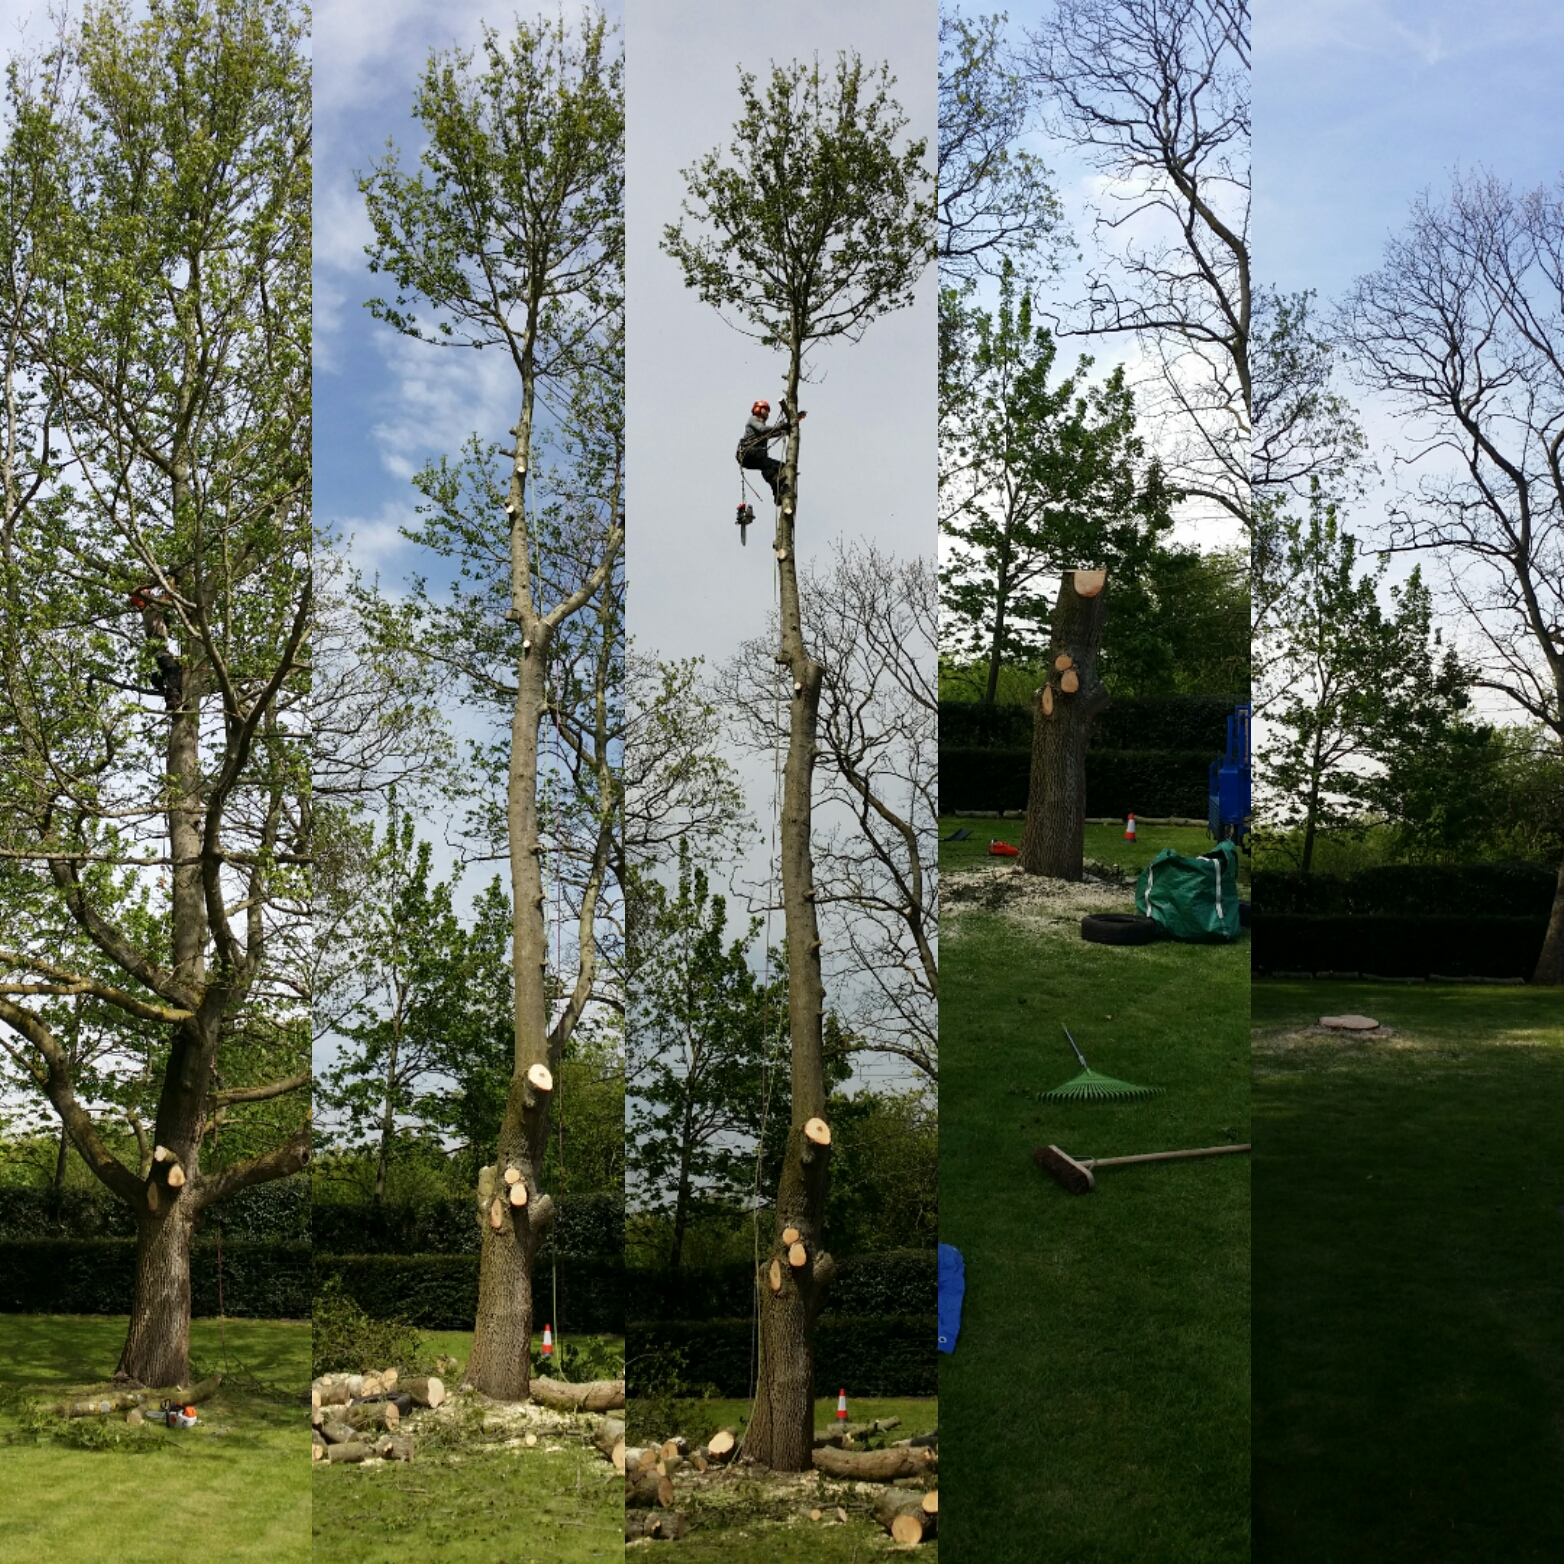 tree surgery | West London